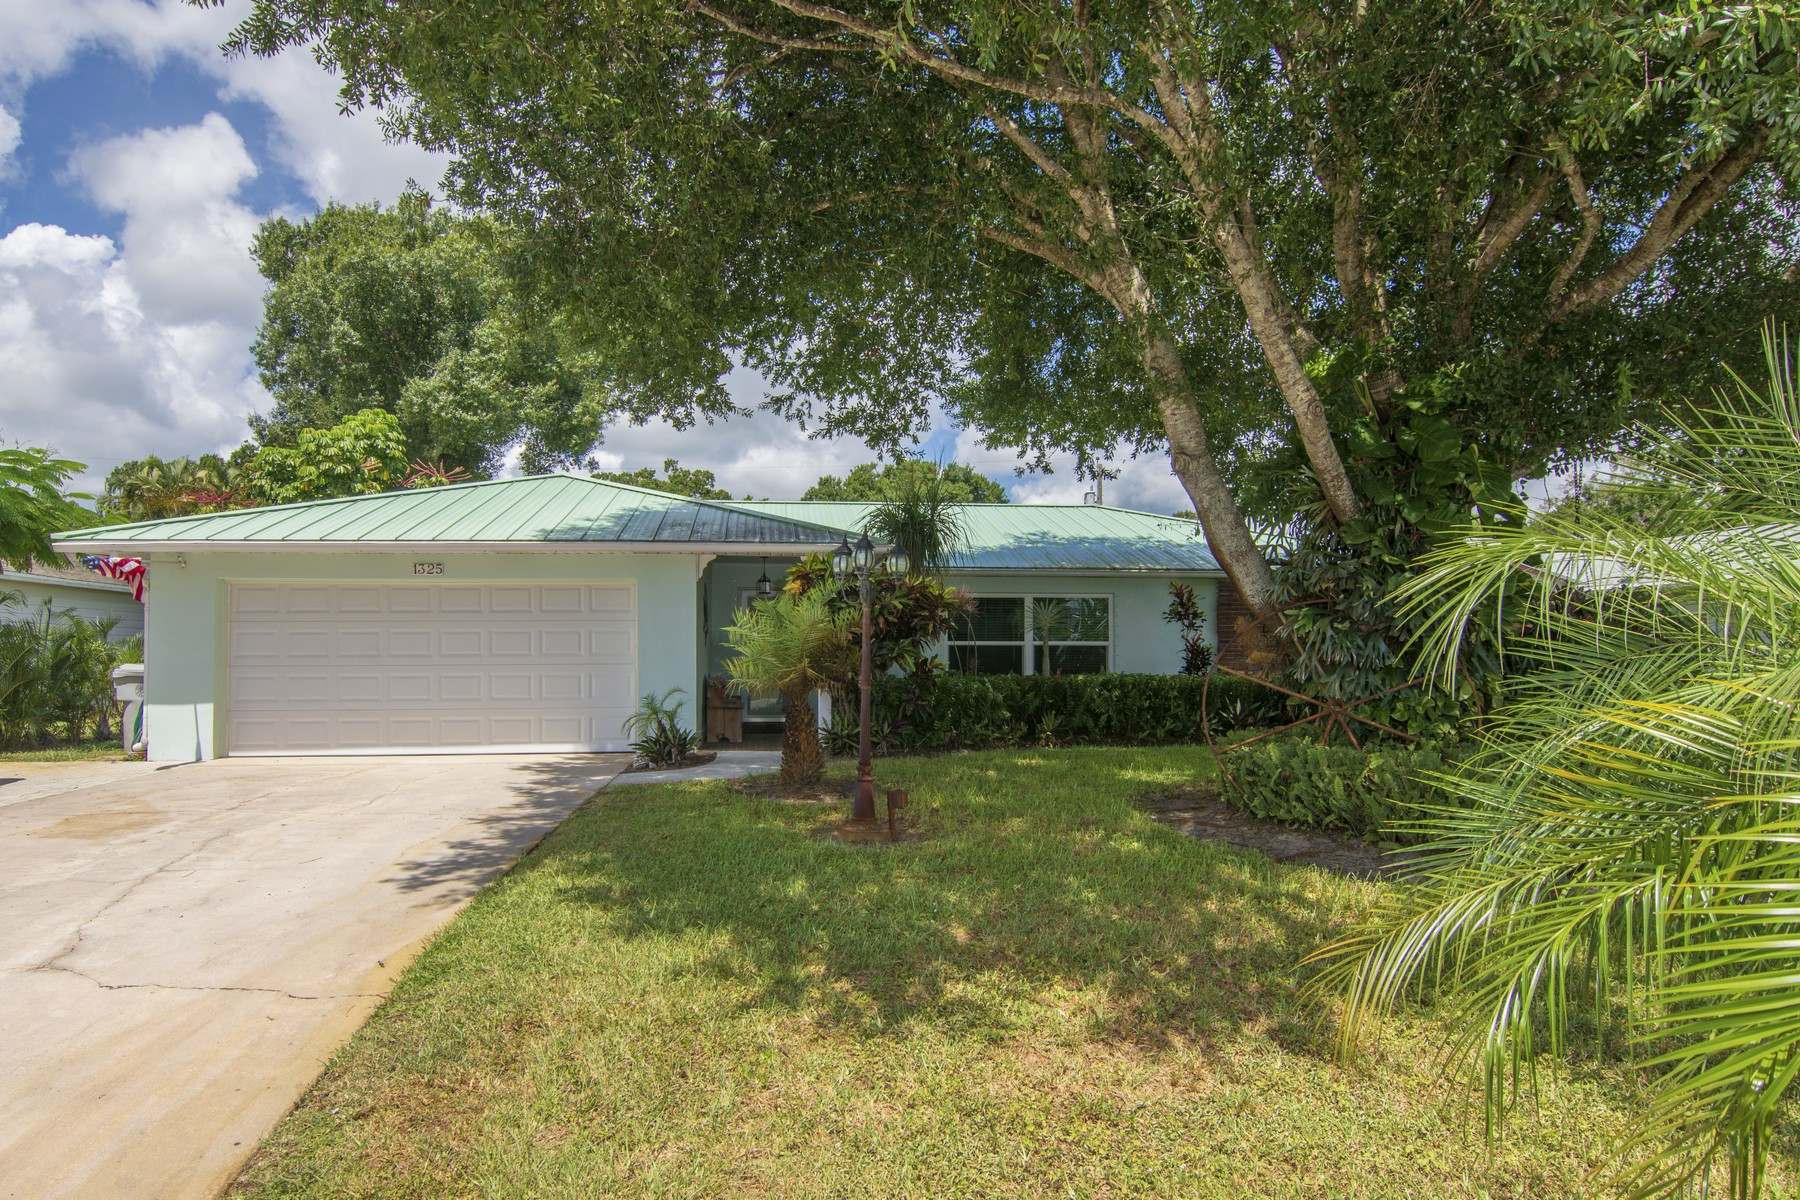 Single Family Homes for Sale at No HOA, Upgraded Pool Home In Vero 1325 42nd Avenue Vero Beach, Florida 32960 United States